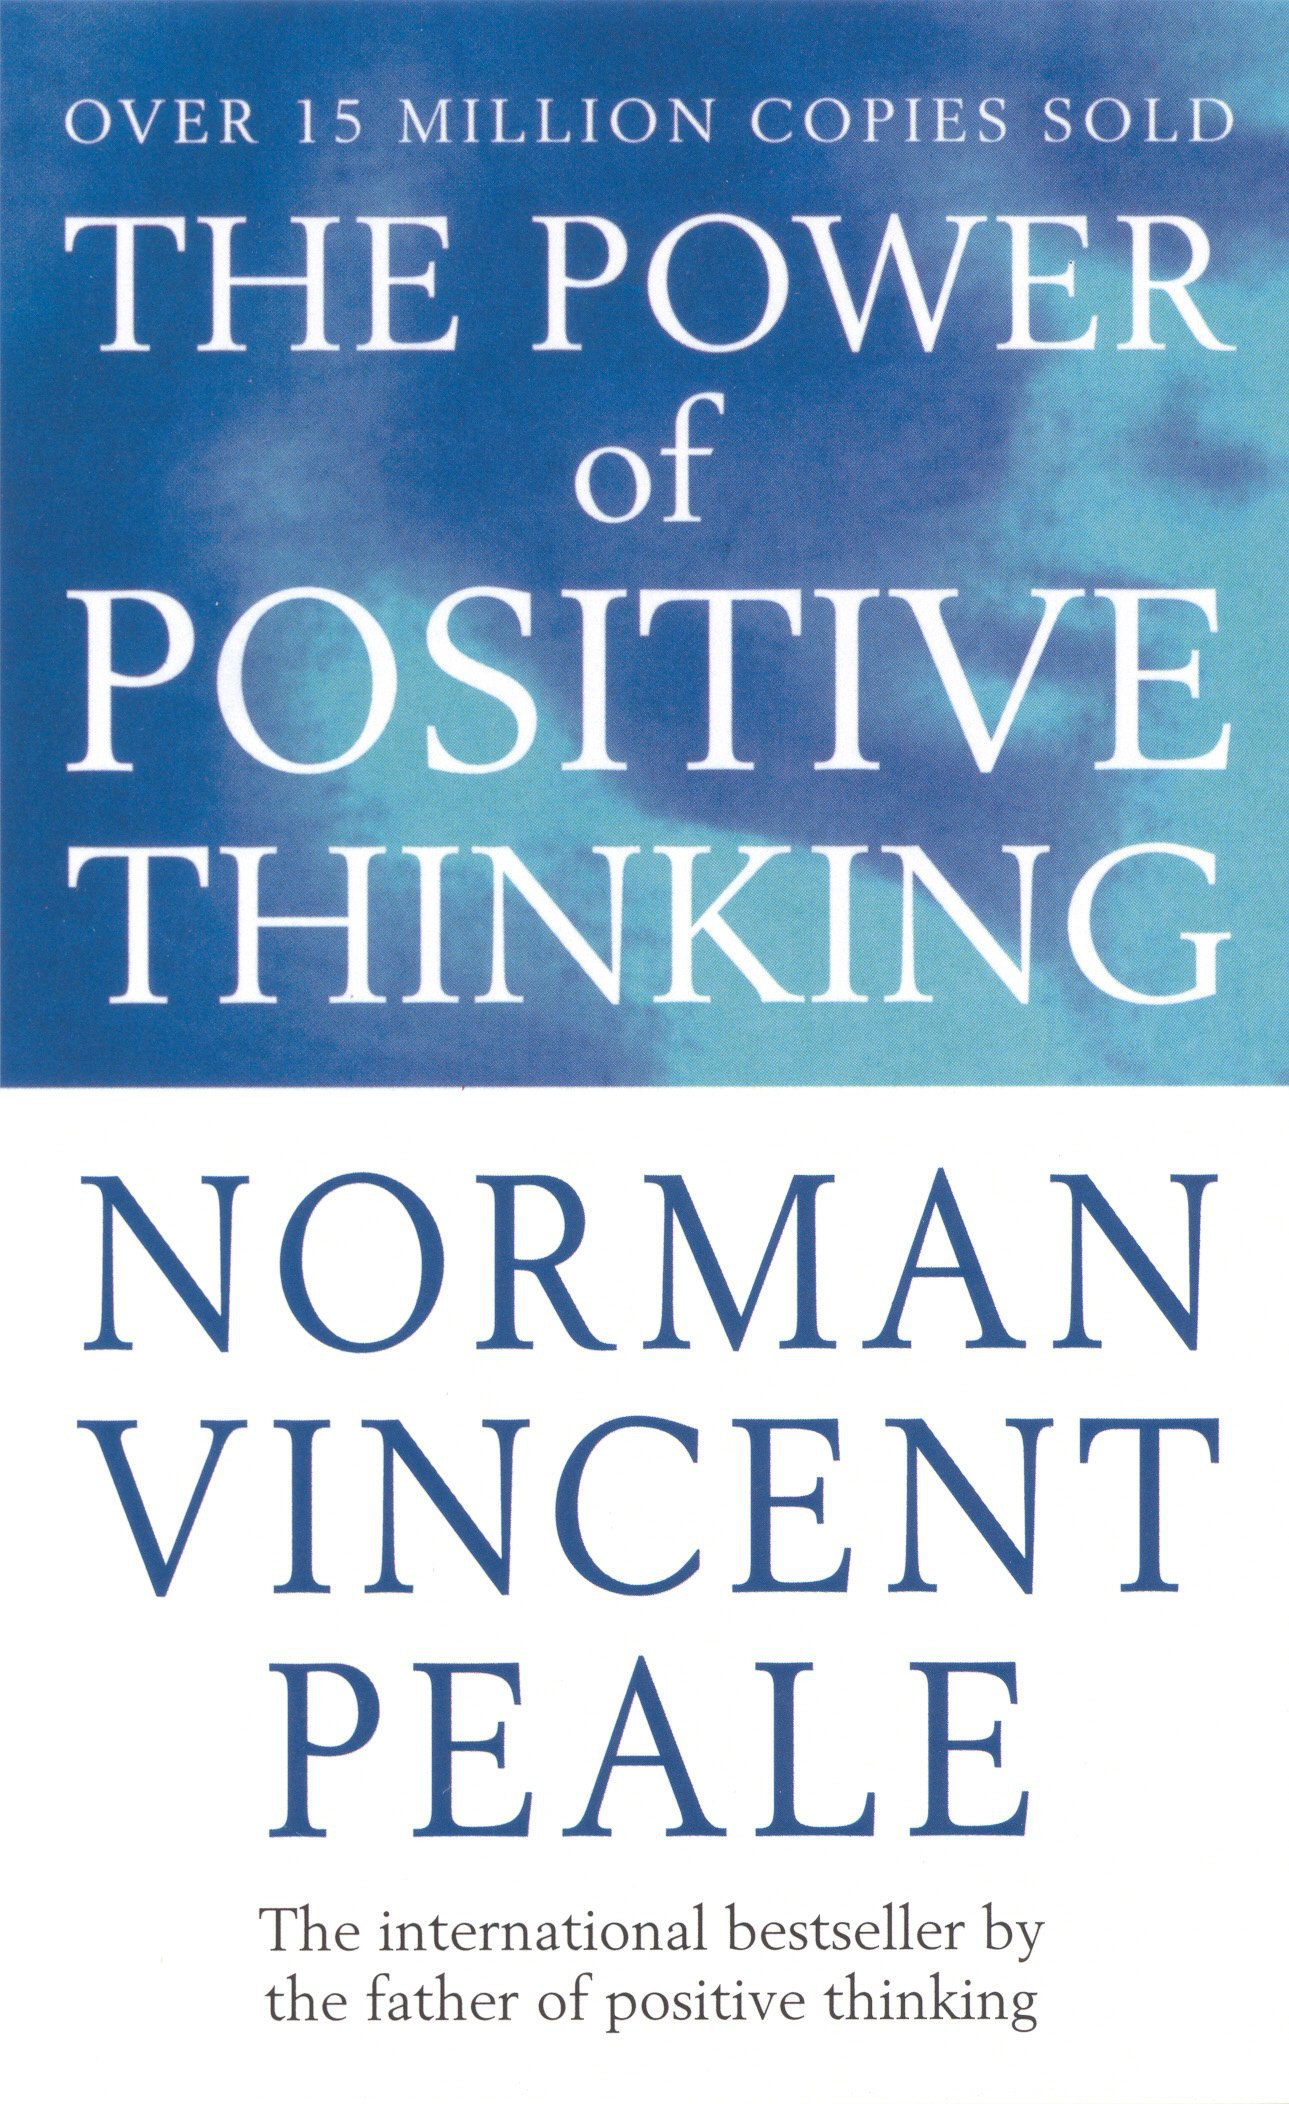 Norman Vincent Peale – The Power Of Positive Thinking